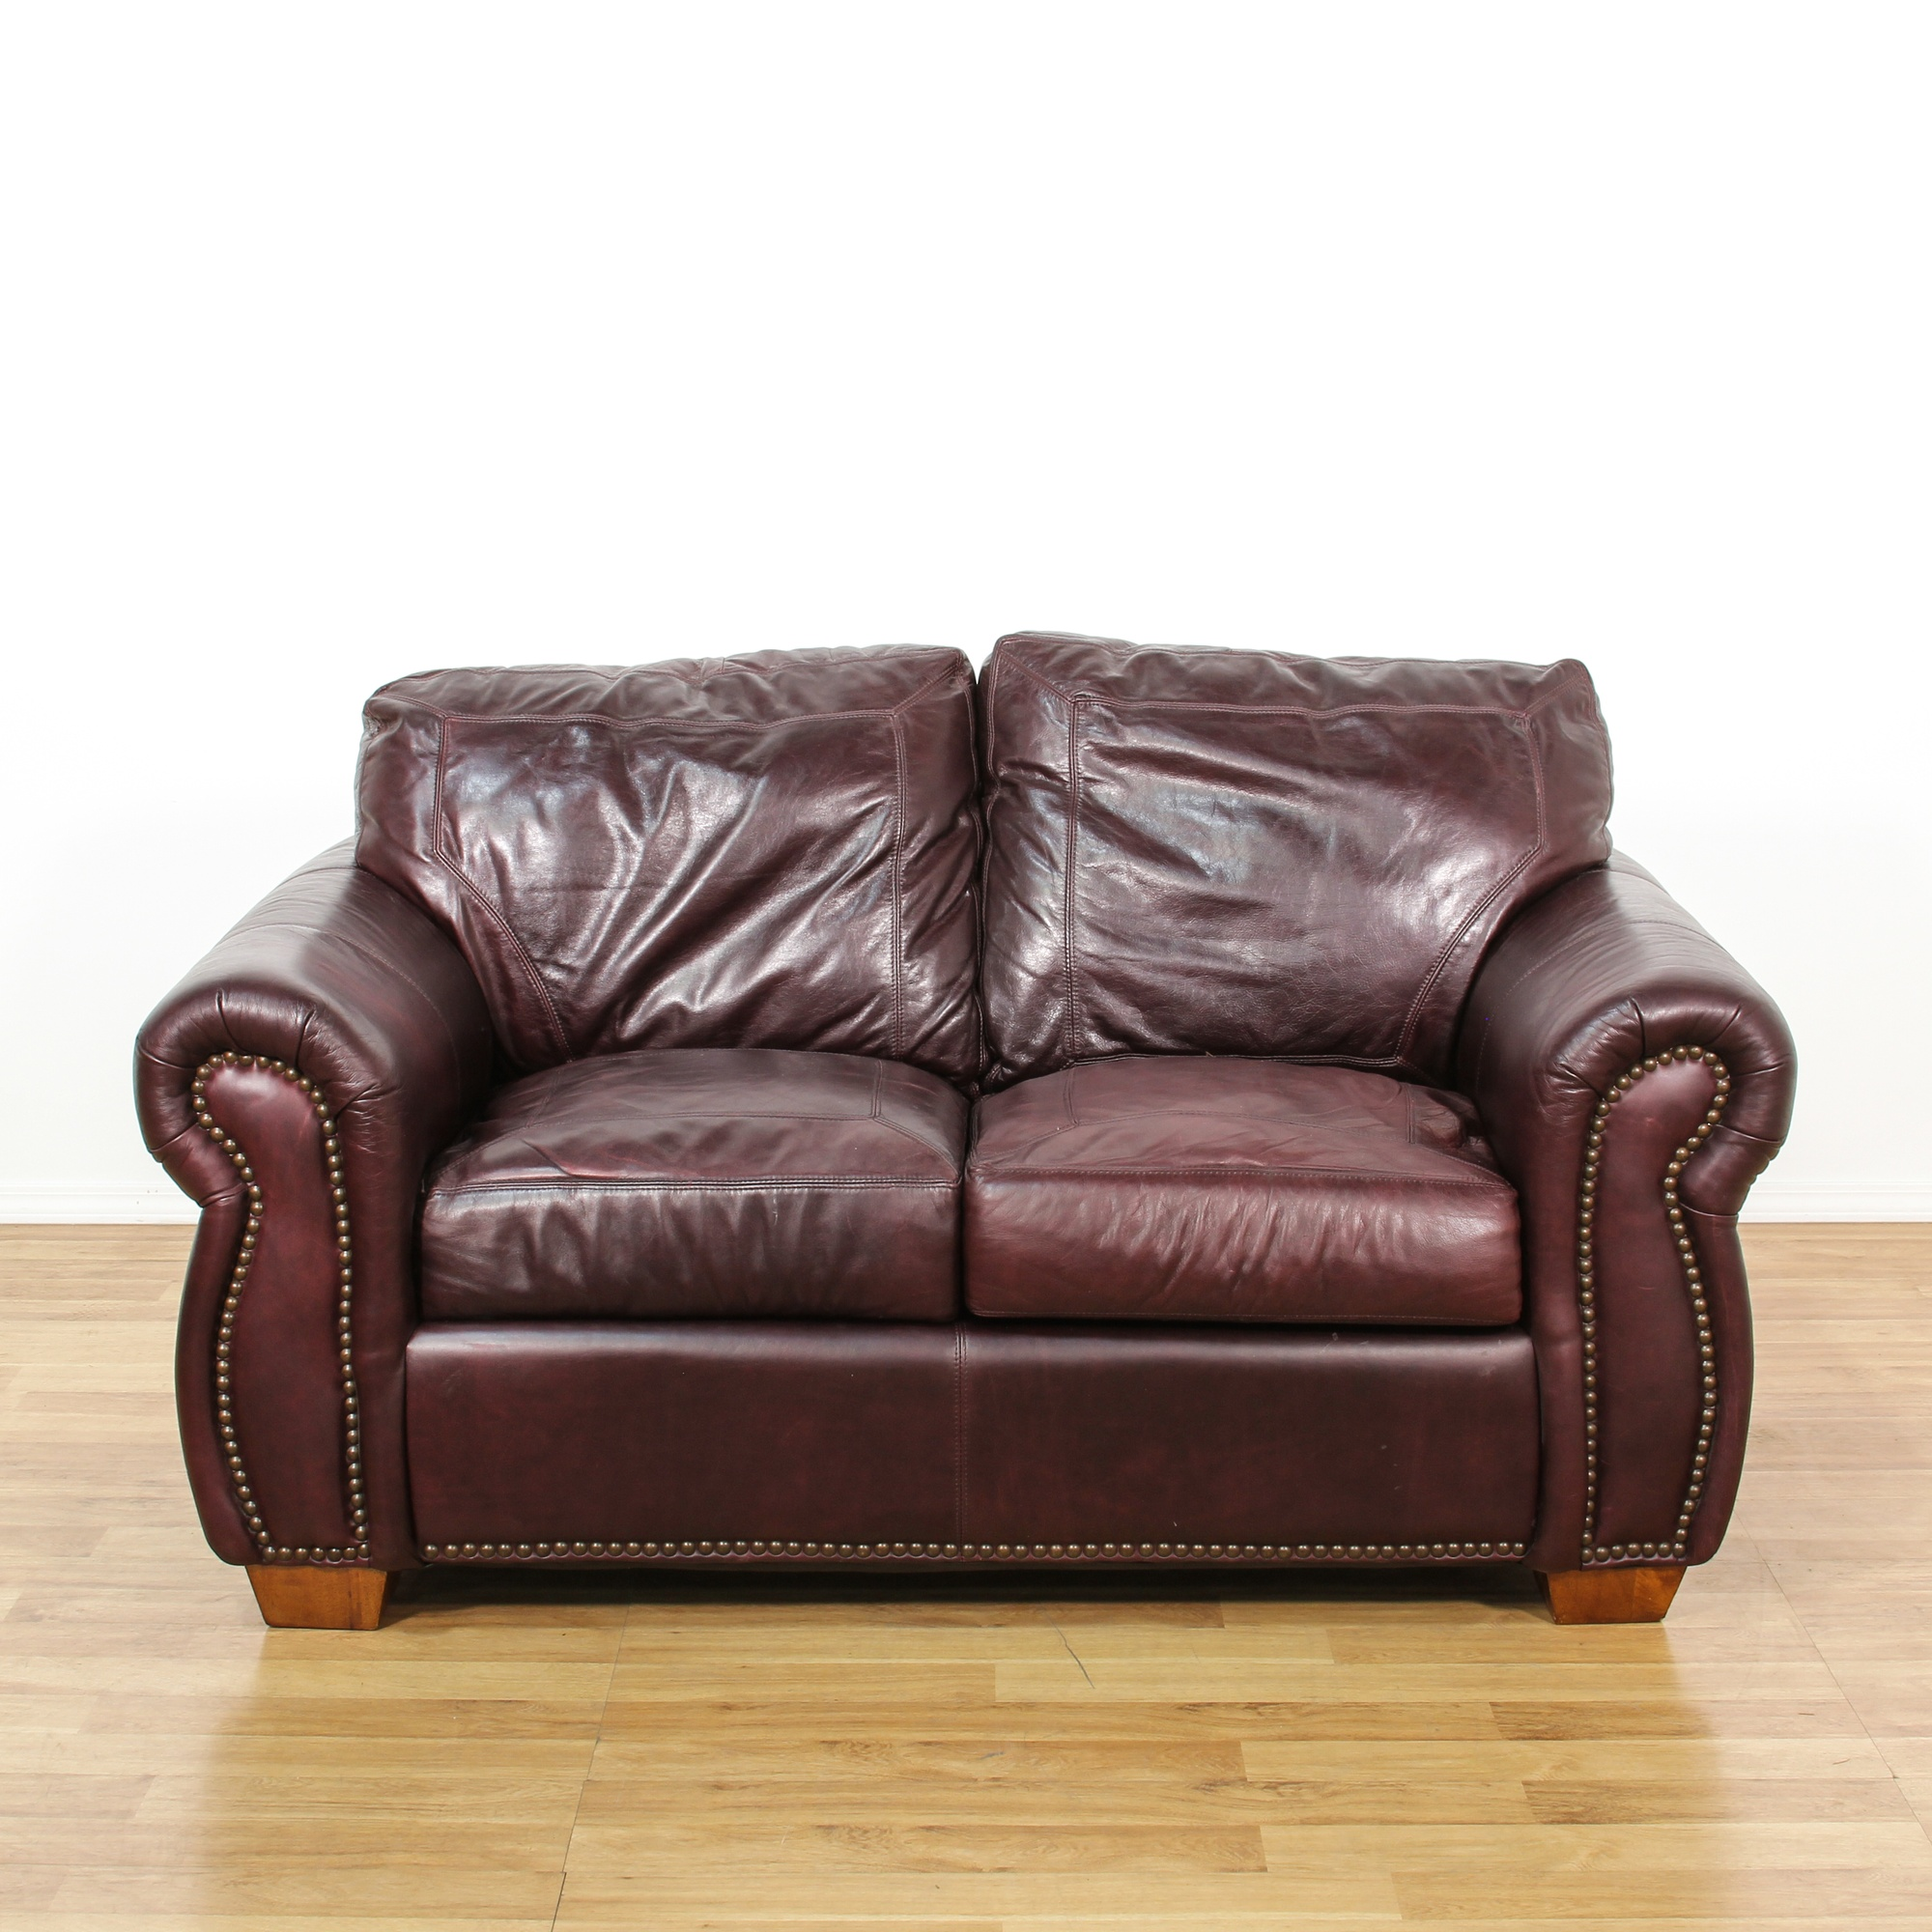 Vintage Upholstered Leather Sofa: Brown Leather Upholstered Sofa Loveseat